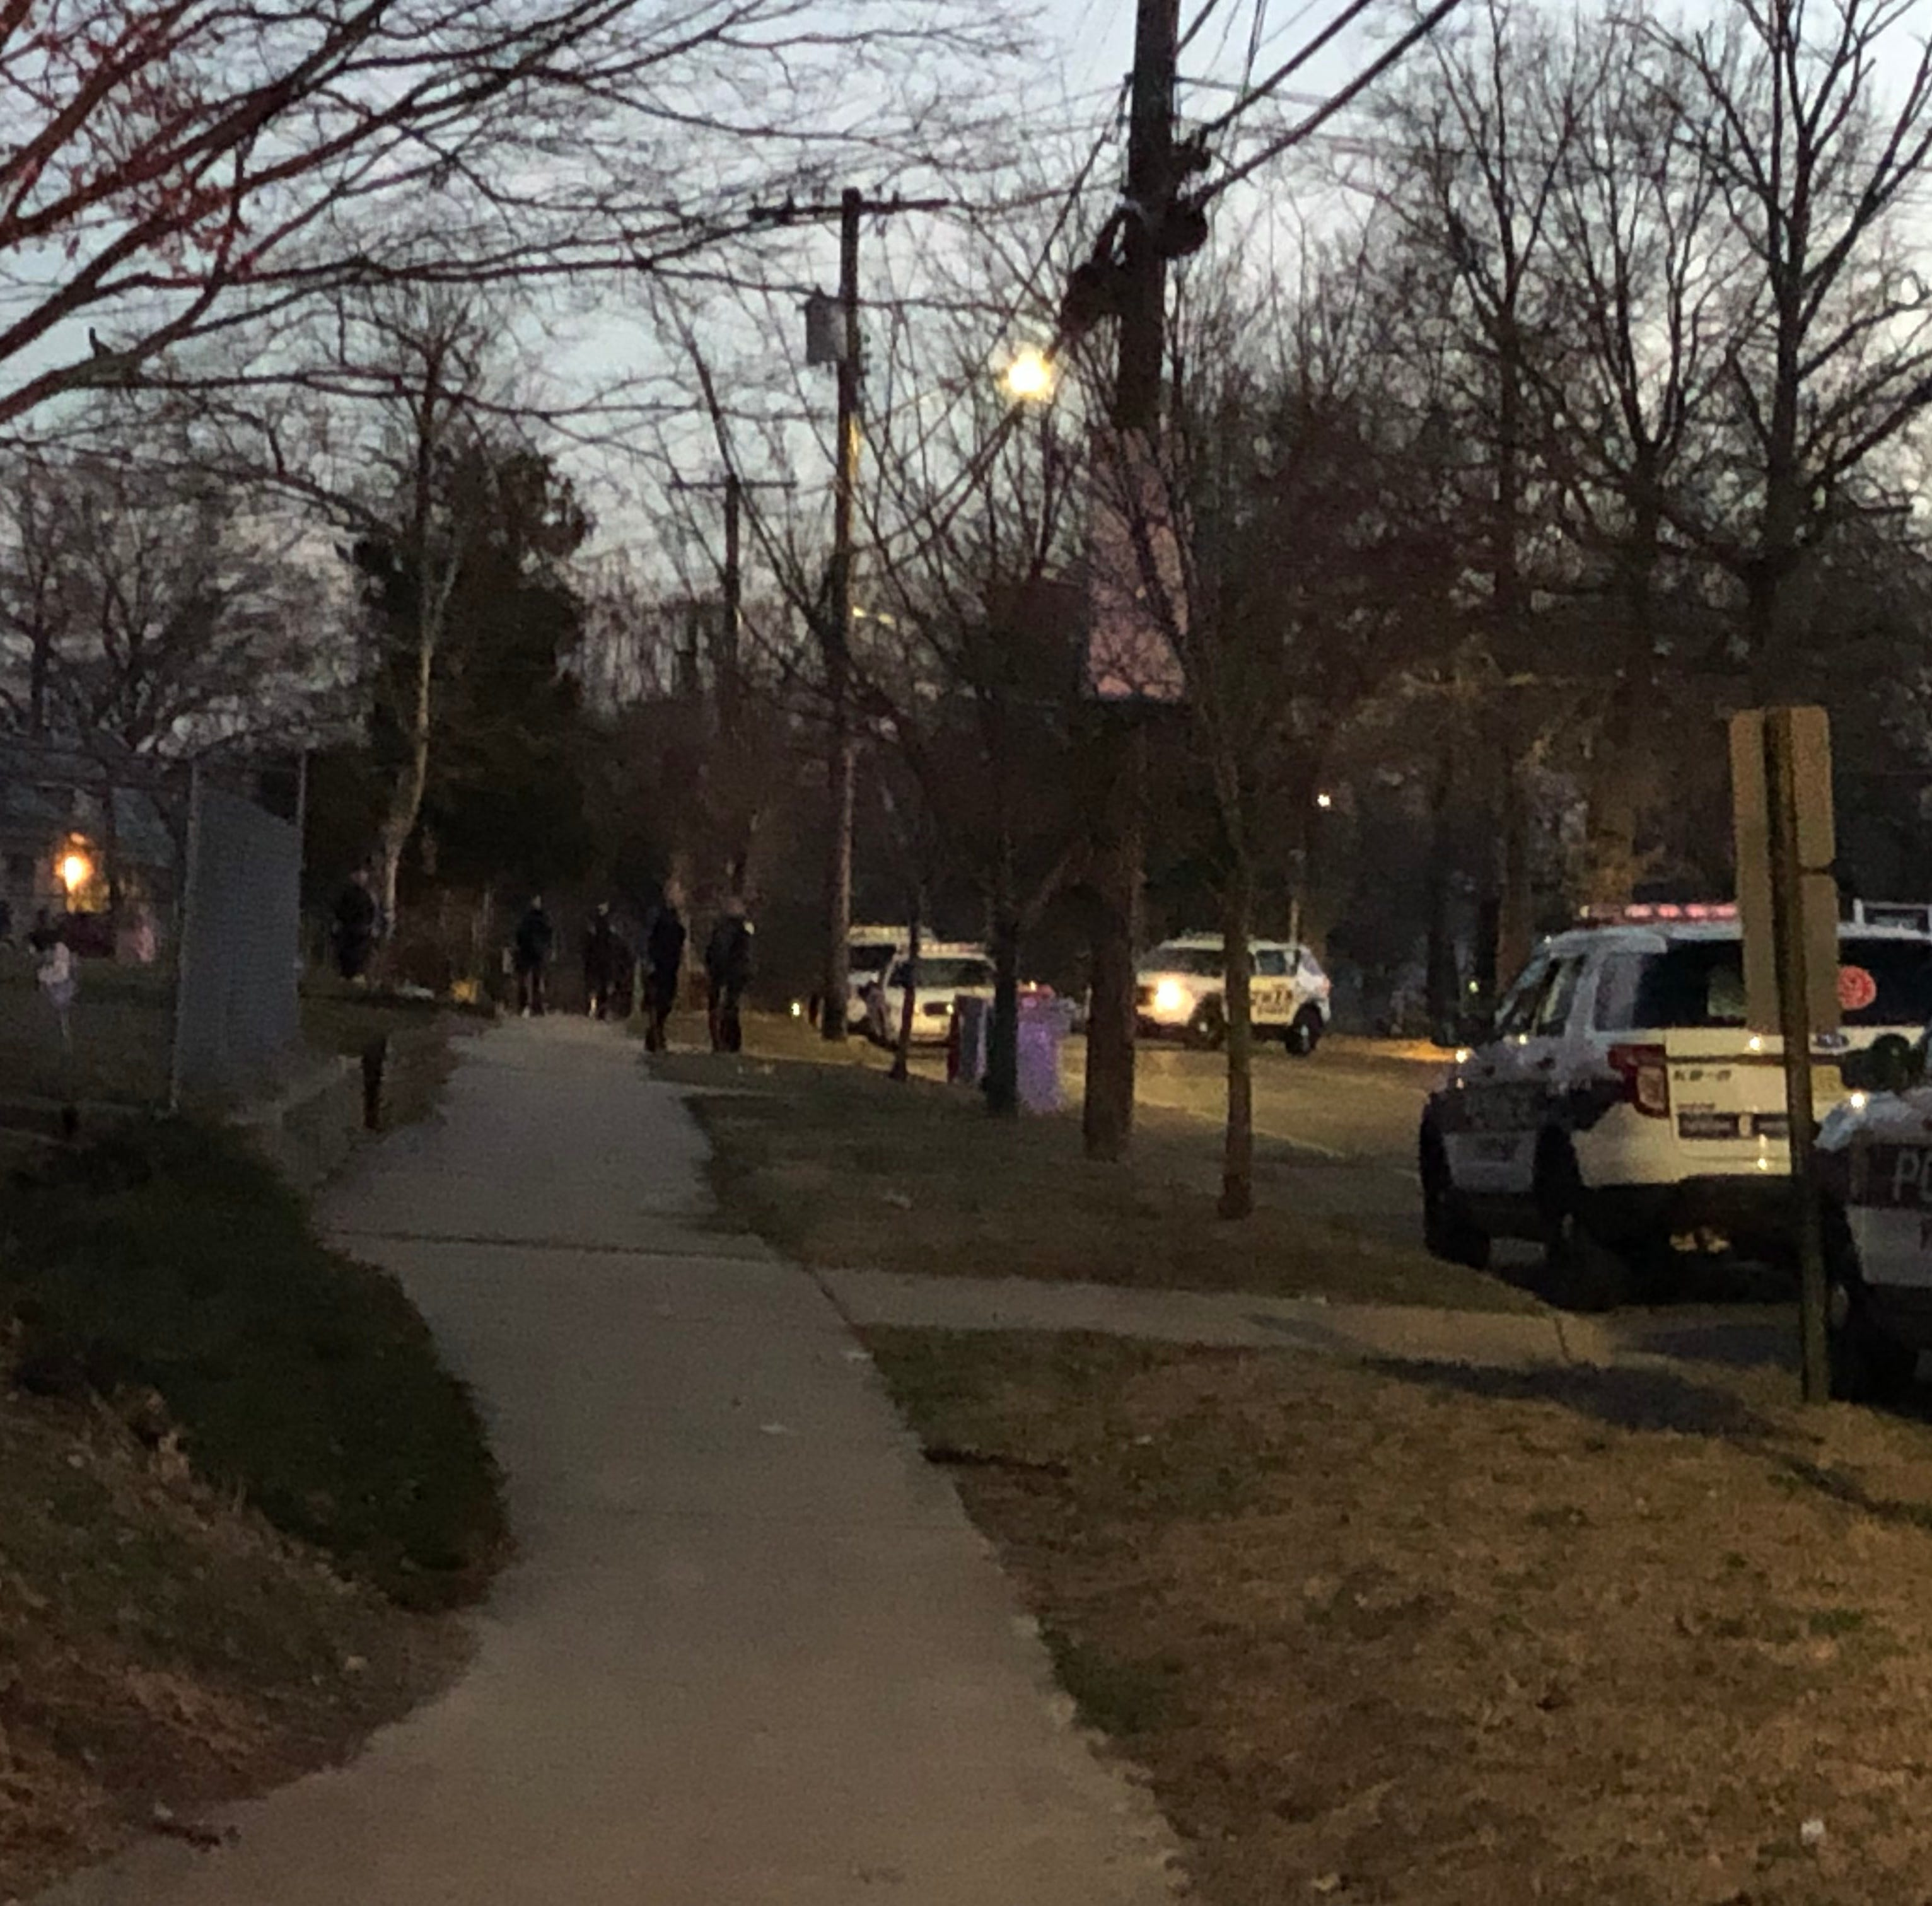 Two teens arrested after police respond to reports of gun on West Avenue